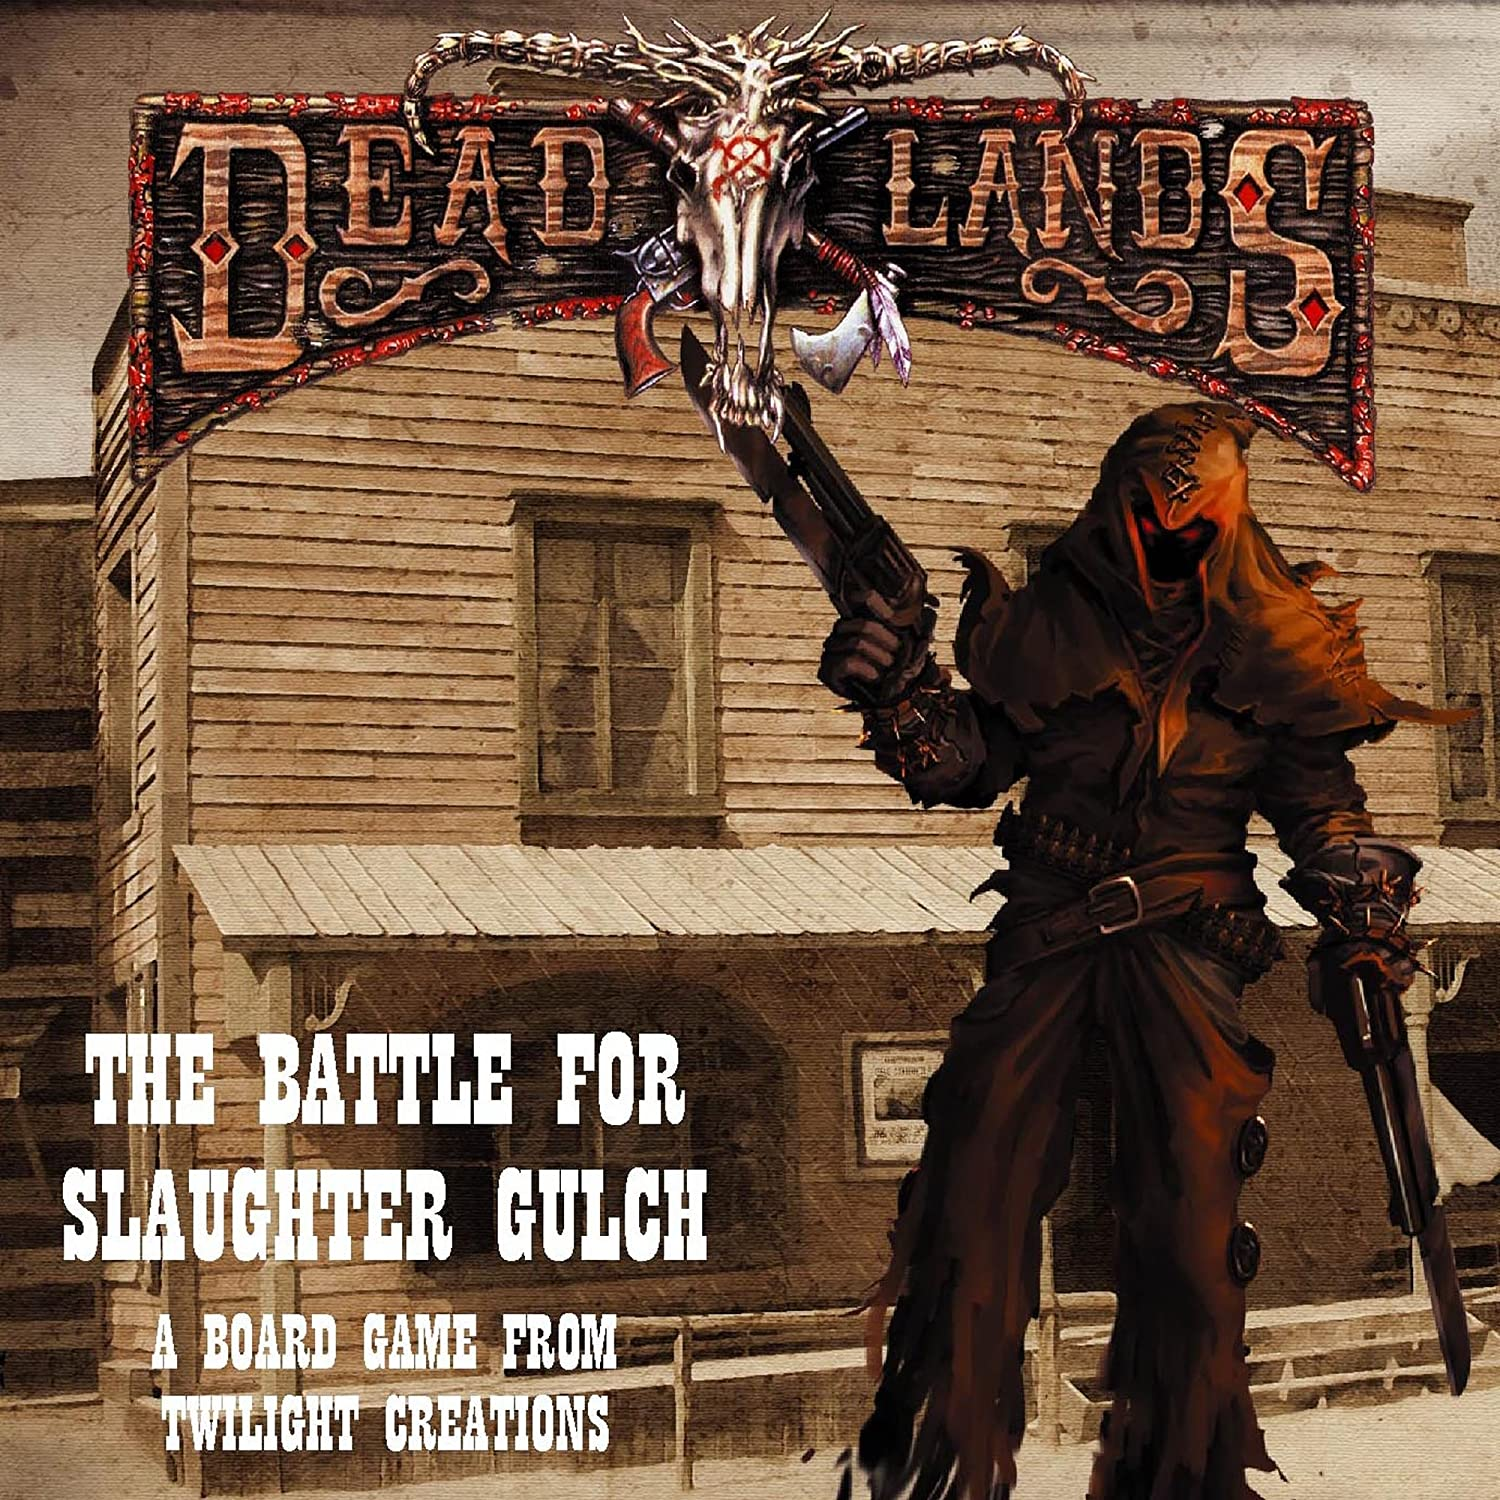 Twilight Creations - Deadlands: Battle for the Slaugther Gulch